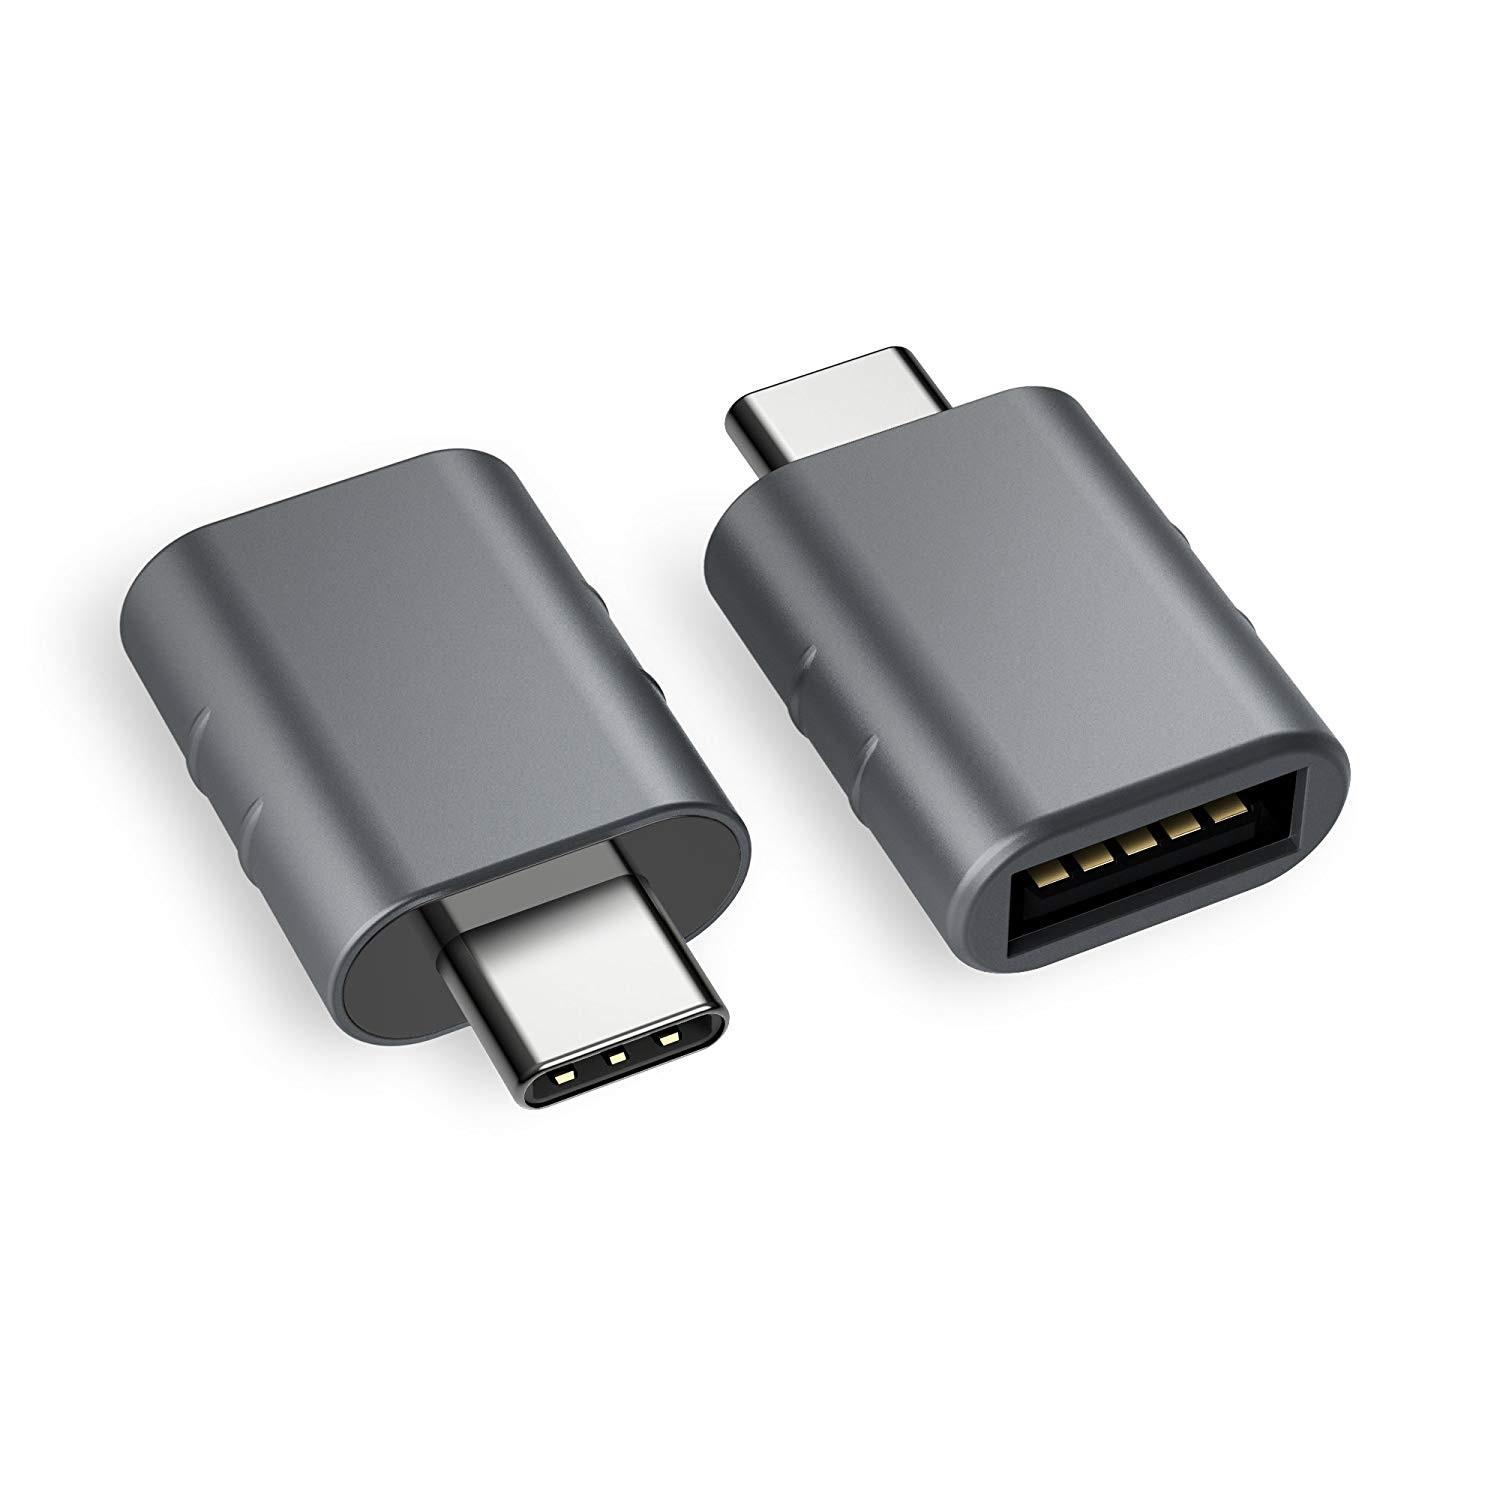 USB-C to USB ADAPTOR - Apple is going to USB-C for all of their new computers and that makes it difficult when EVERYTHING YOU OWN plugs into a USB. Well - here's an inexpensive solution!